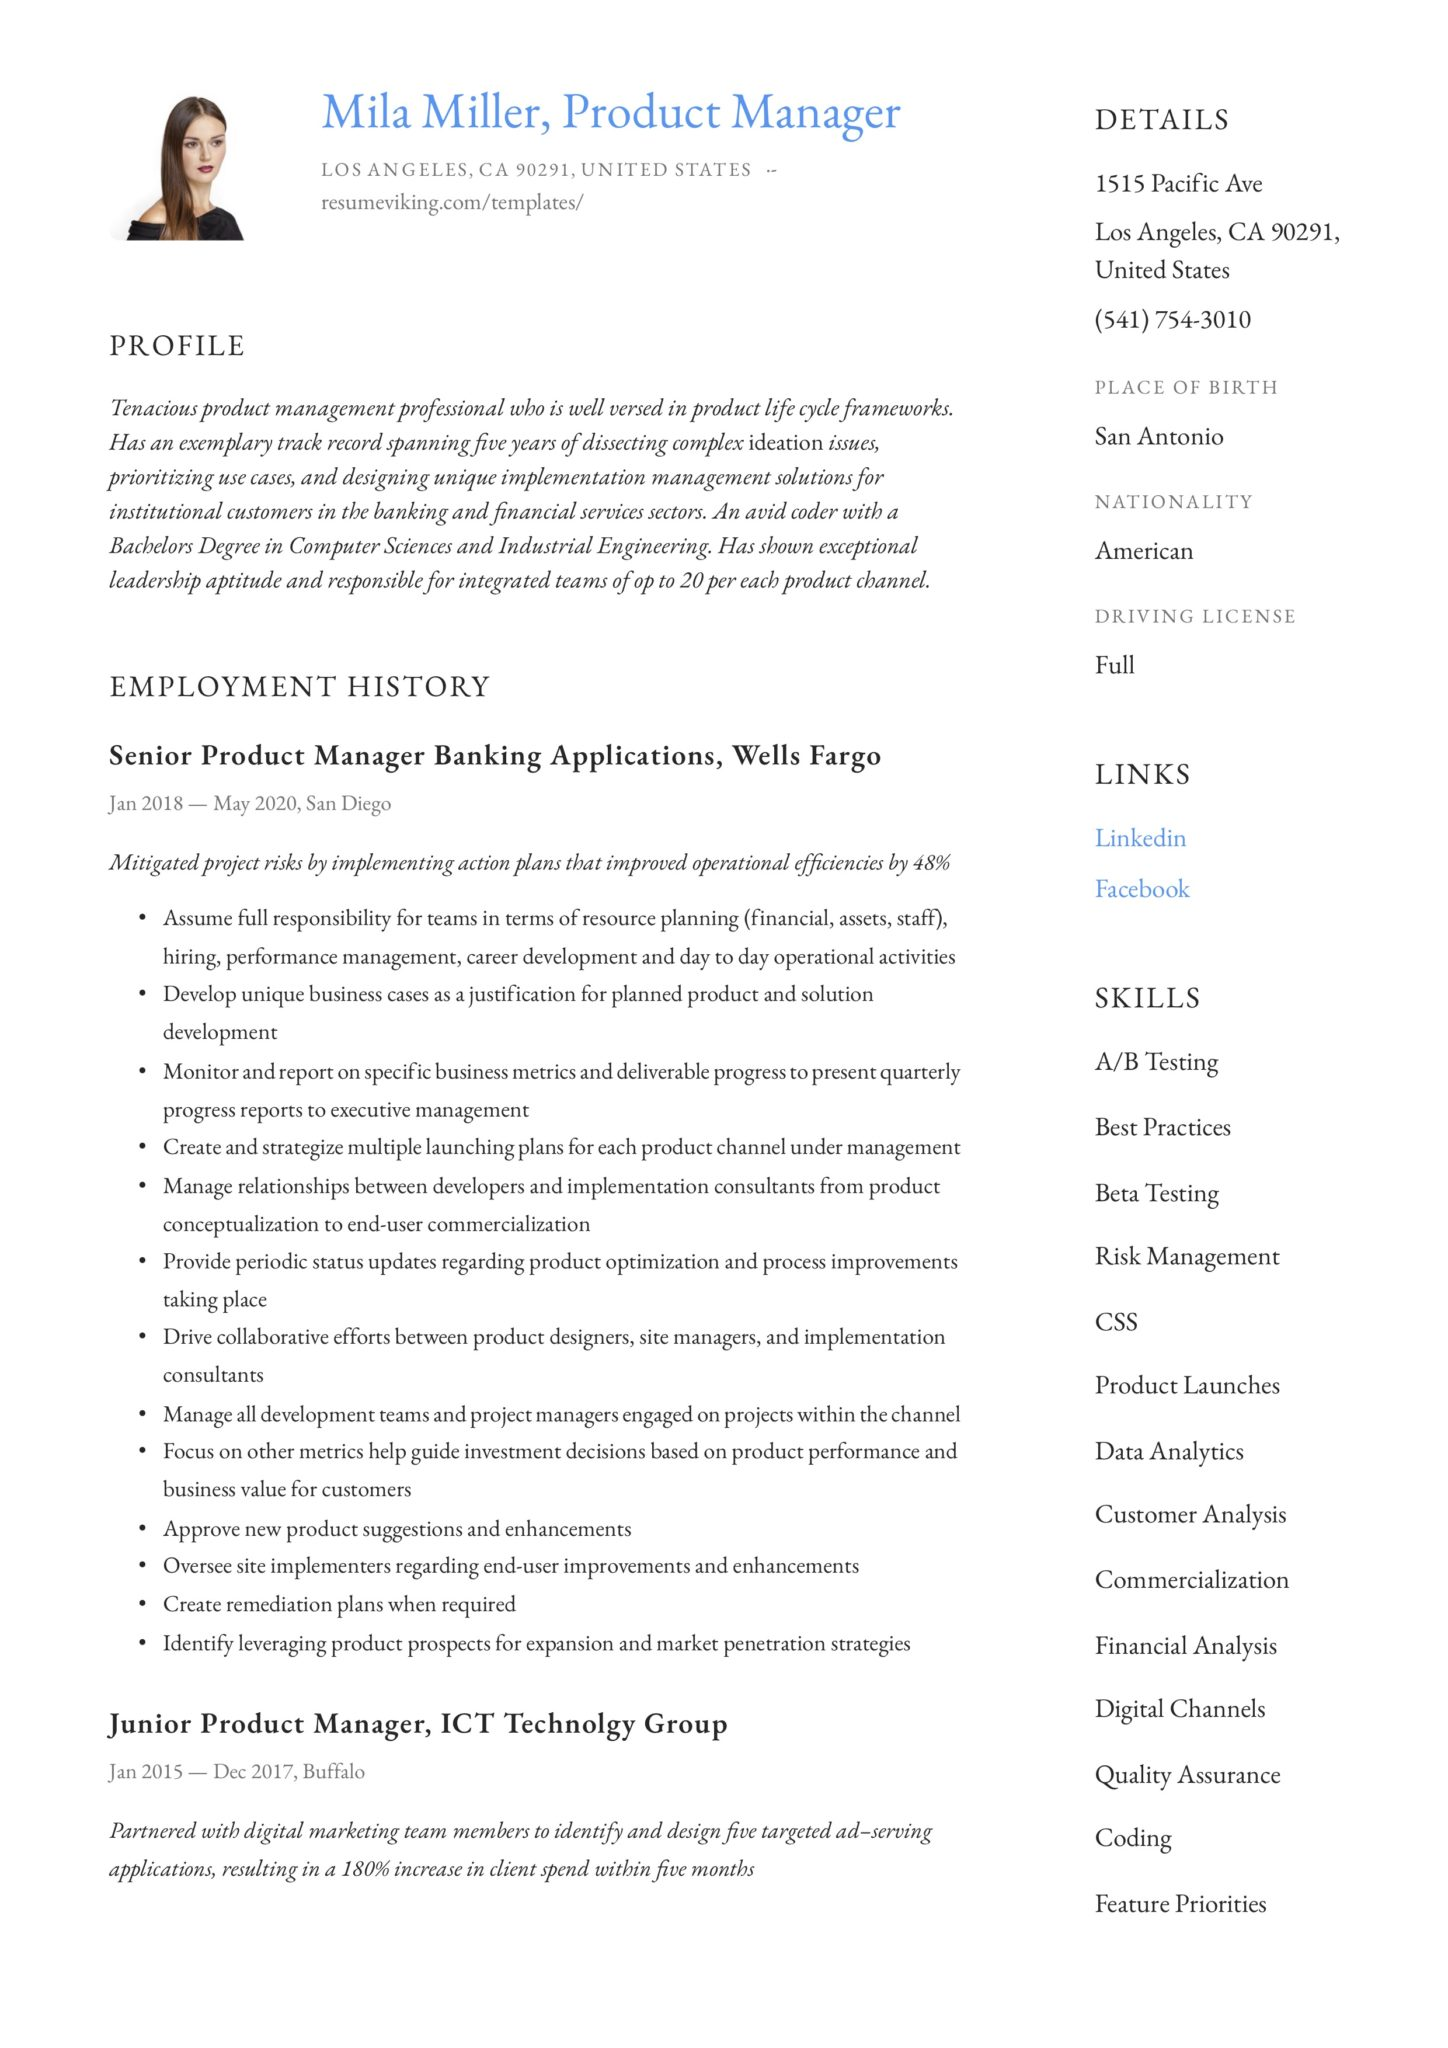 product manager resume guide samples pdf agile scaled entertainment industry activity Resume Agile Product Manager Resume